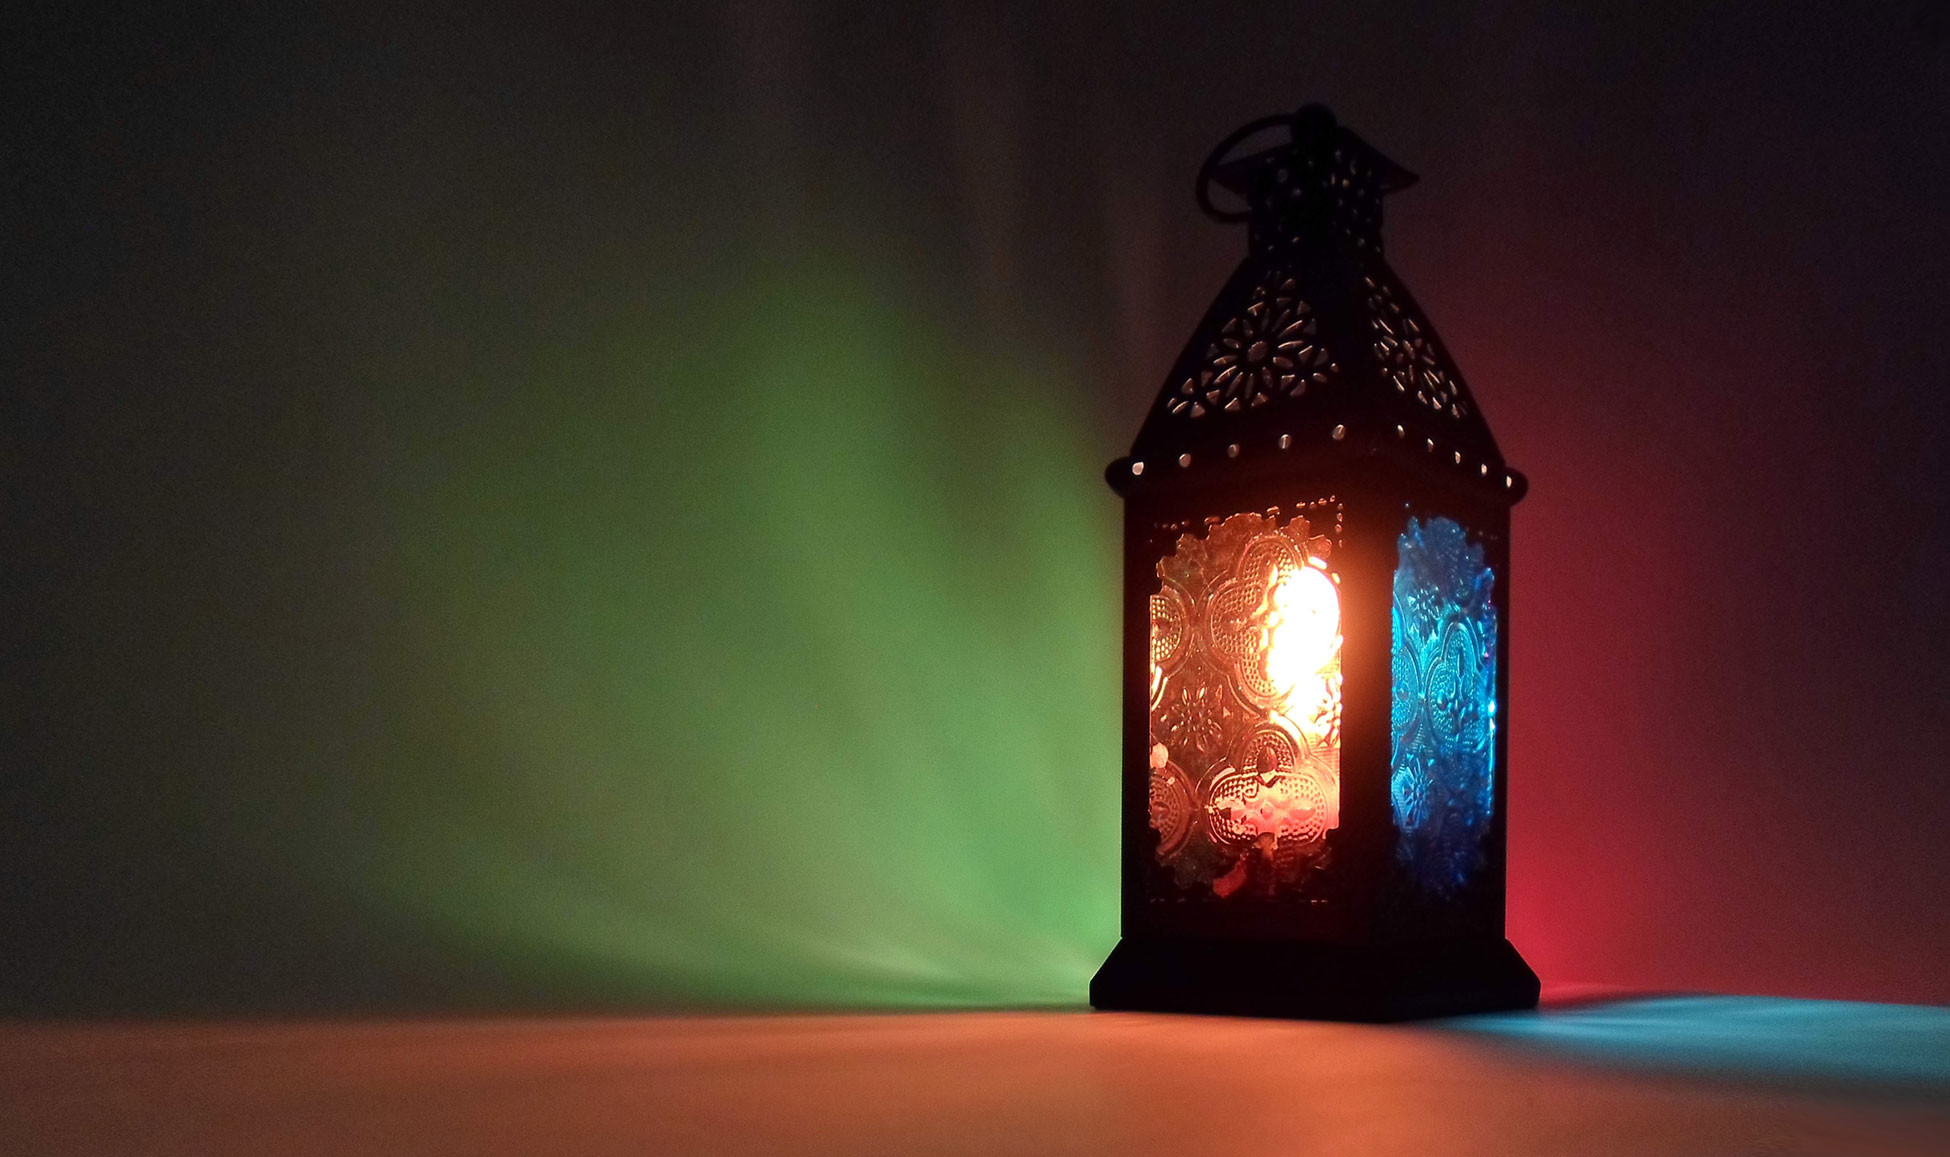 Islamic Wallpapers HD 2018 (51+ Images